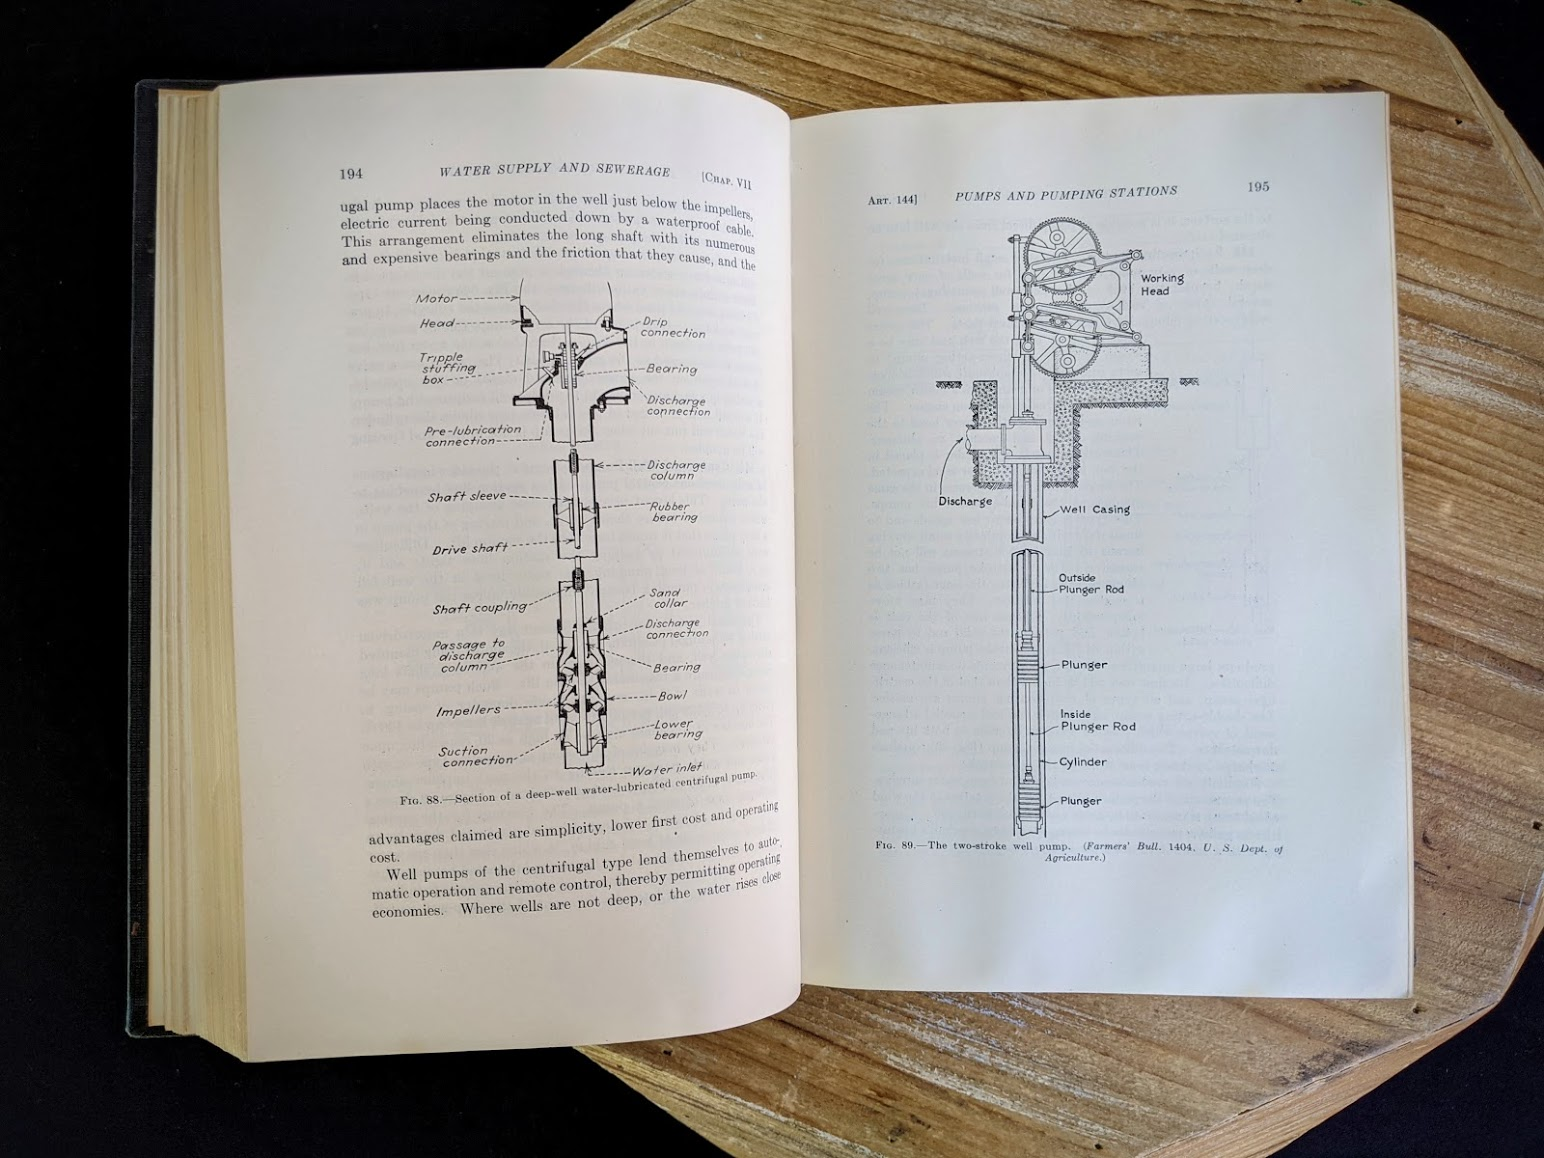 pumps and pumping stations diagram - 1947 Water Supply and Sewerage by Ernest W. Steel - second Edition